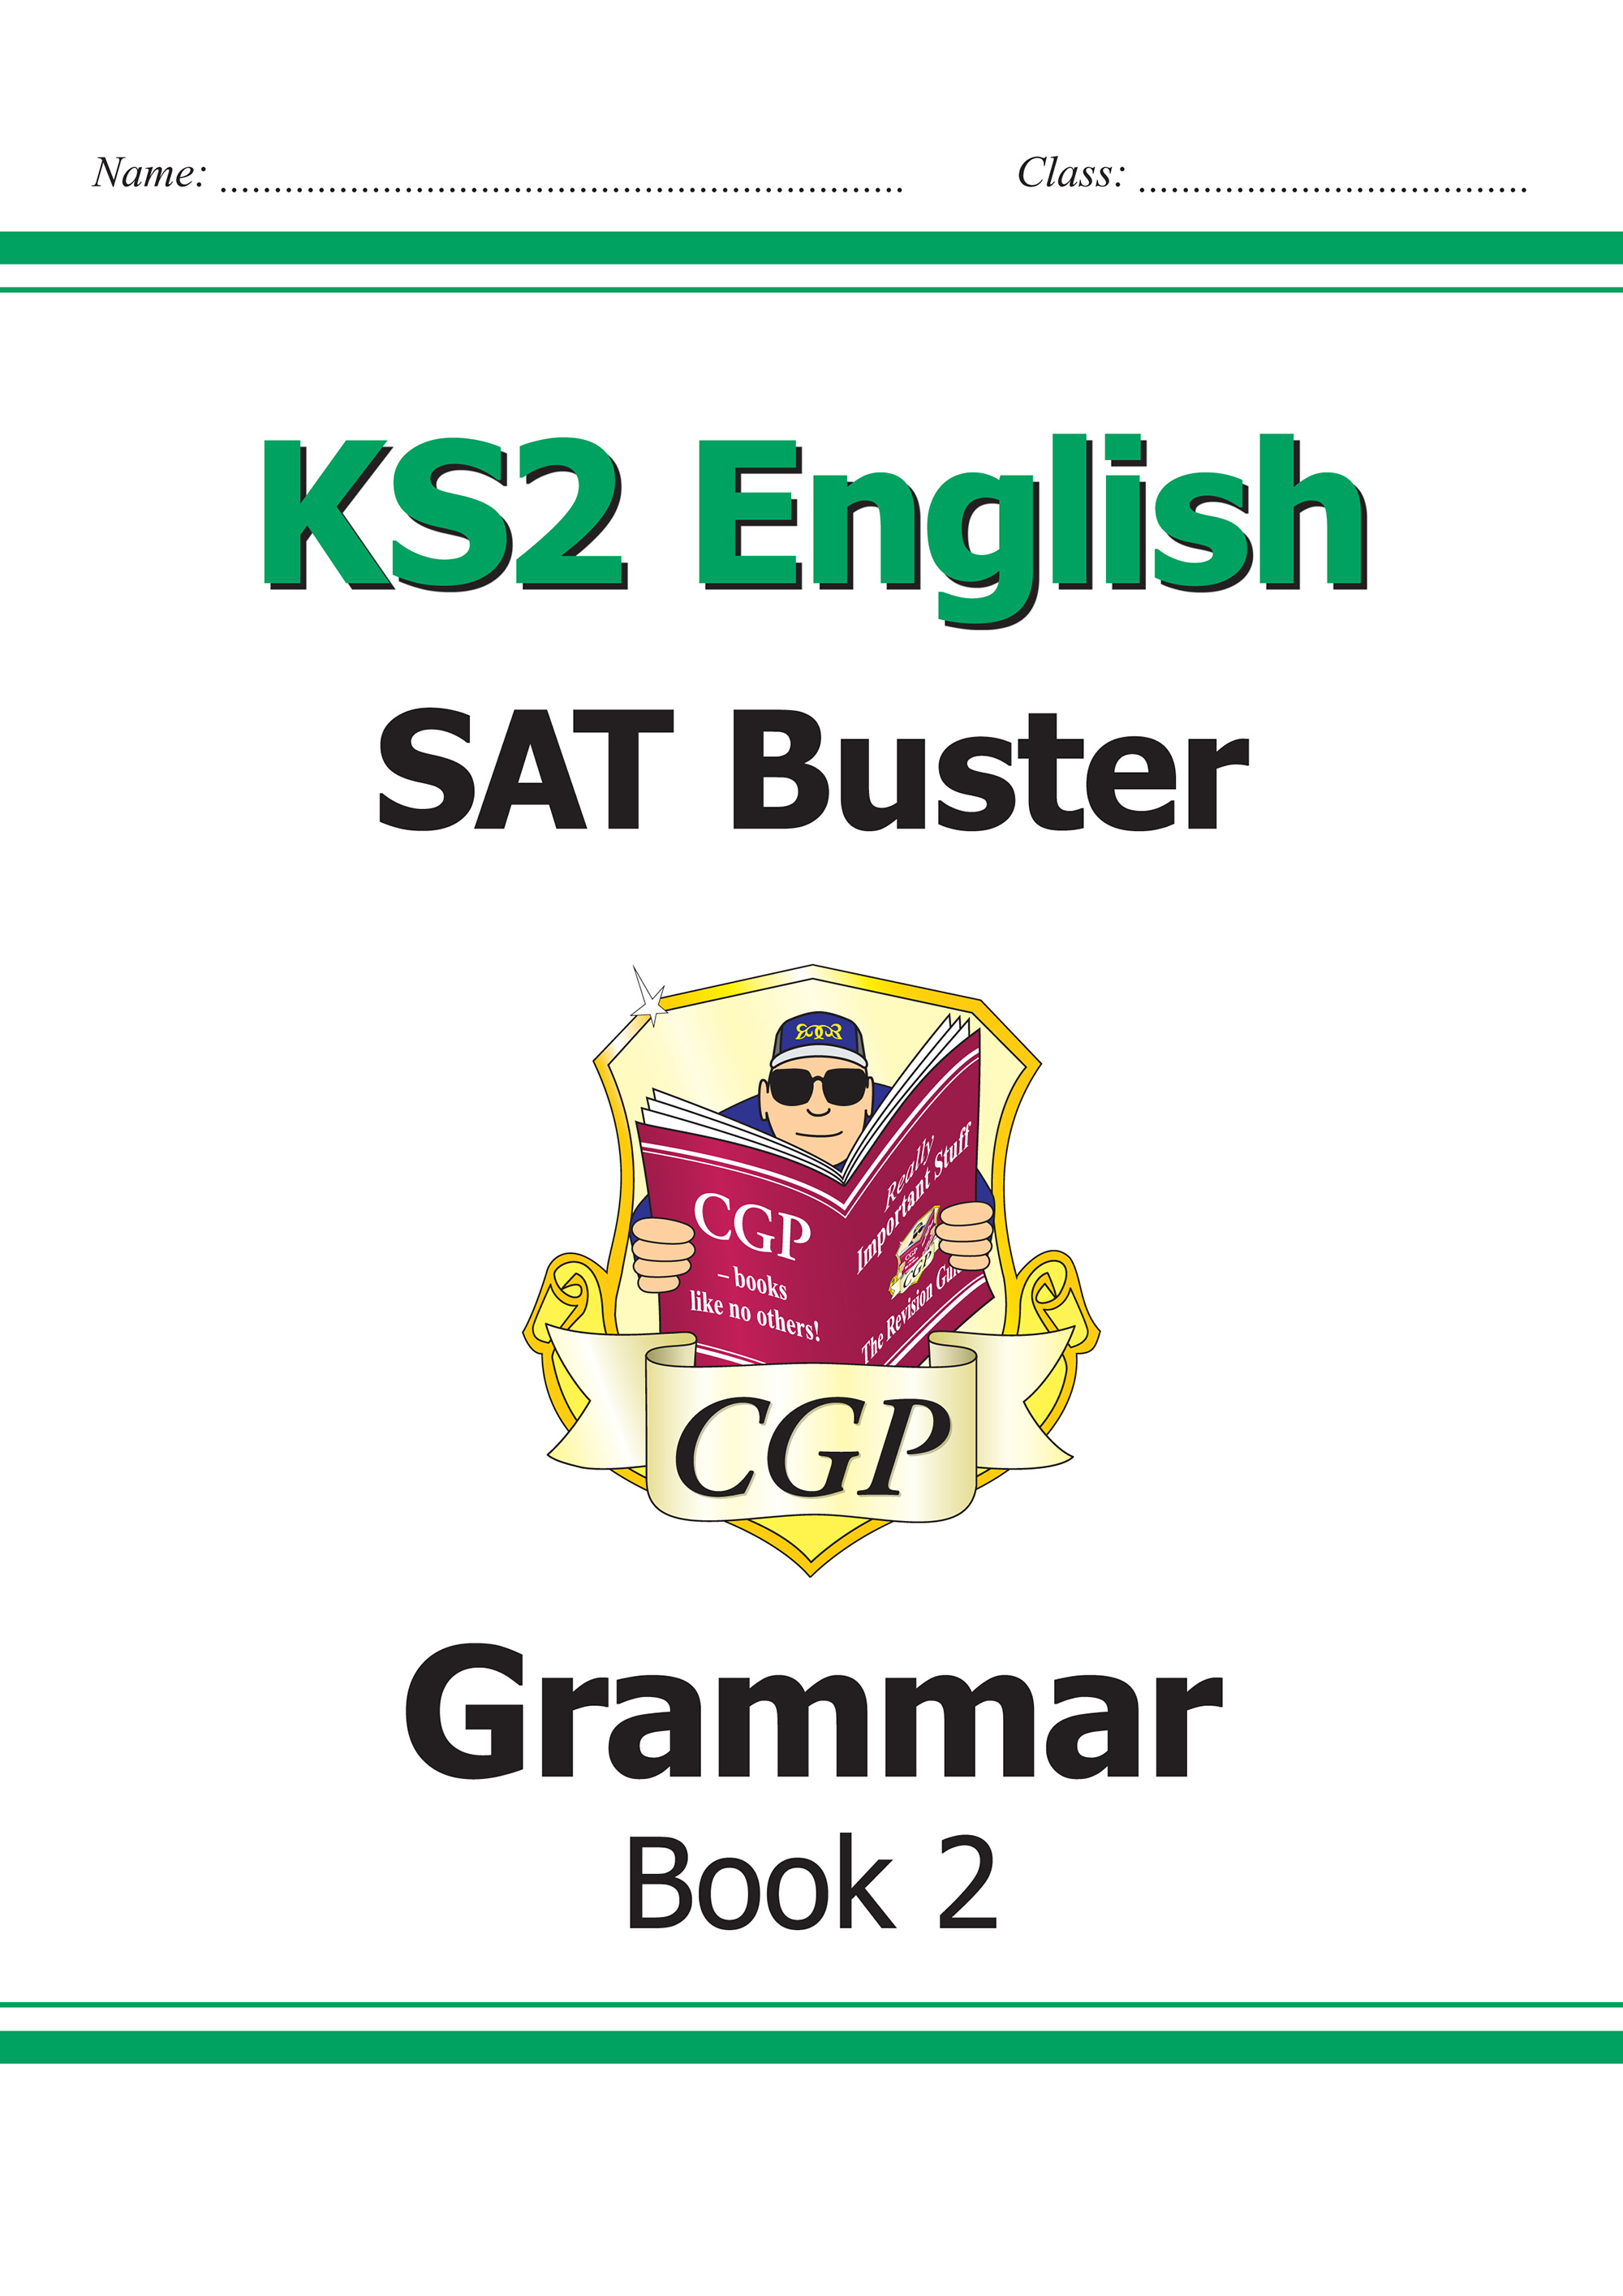 E6G222 - KS2 English SAT Buster - Grammar Book 2 (for the 2019 tests)